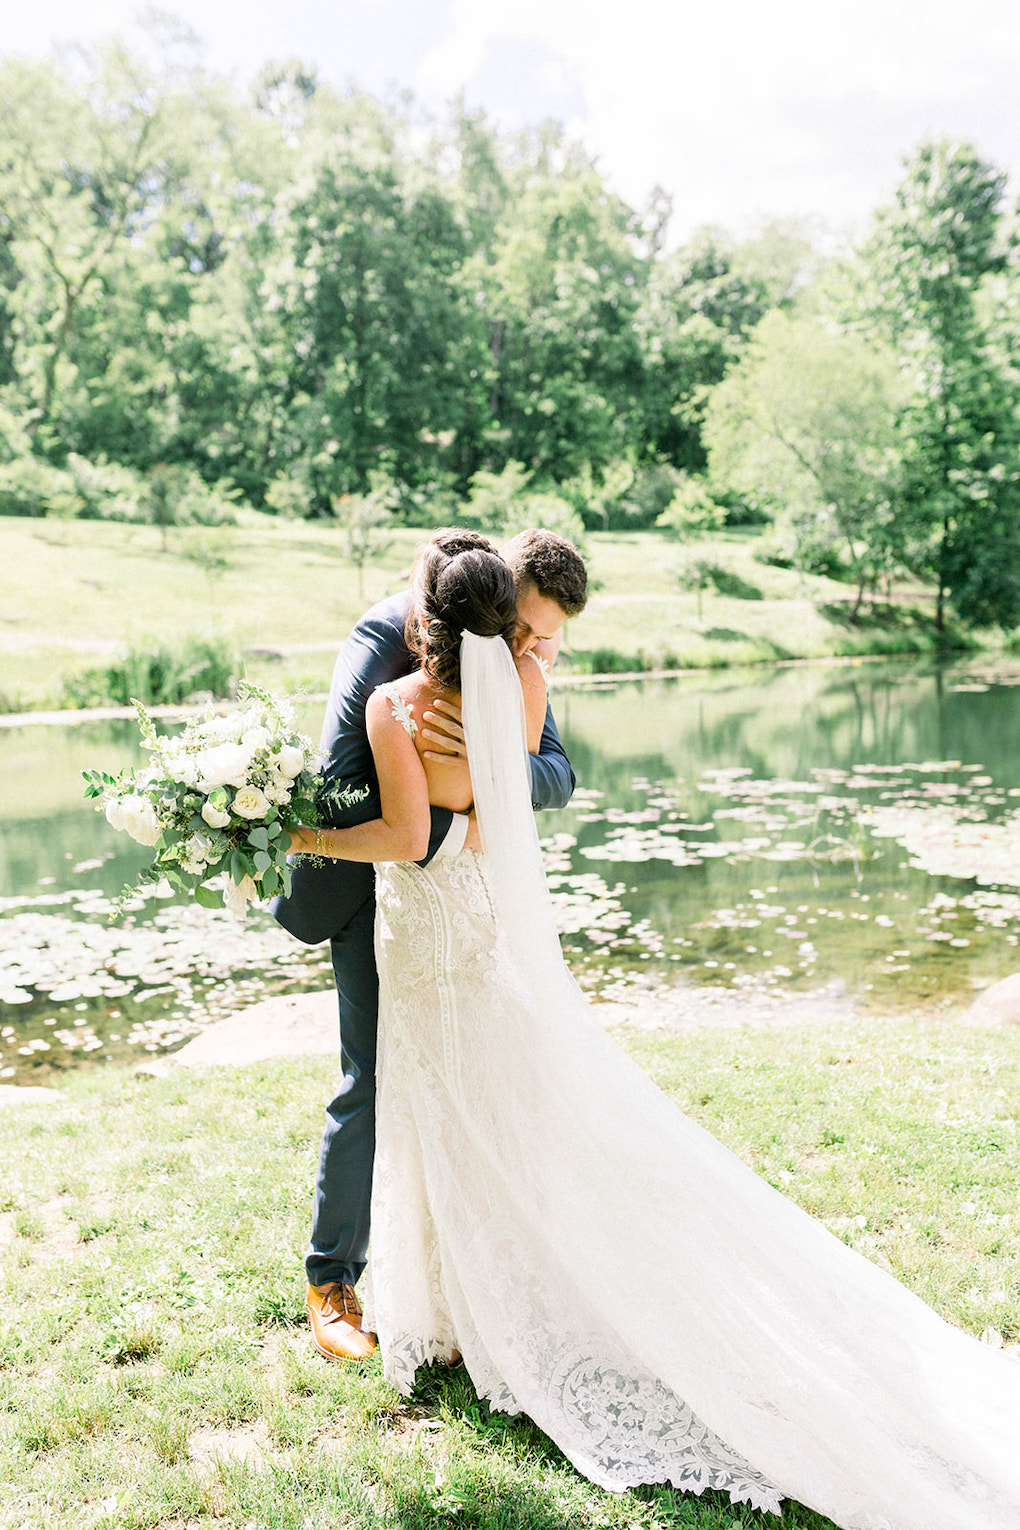 First look with bride and groom: Pittsburgh Botanic Garden wedding planned by Exhale Events. See more wedding inspiration at exhale-events.com!